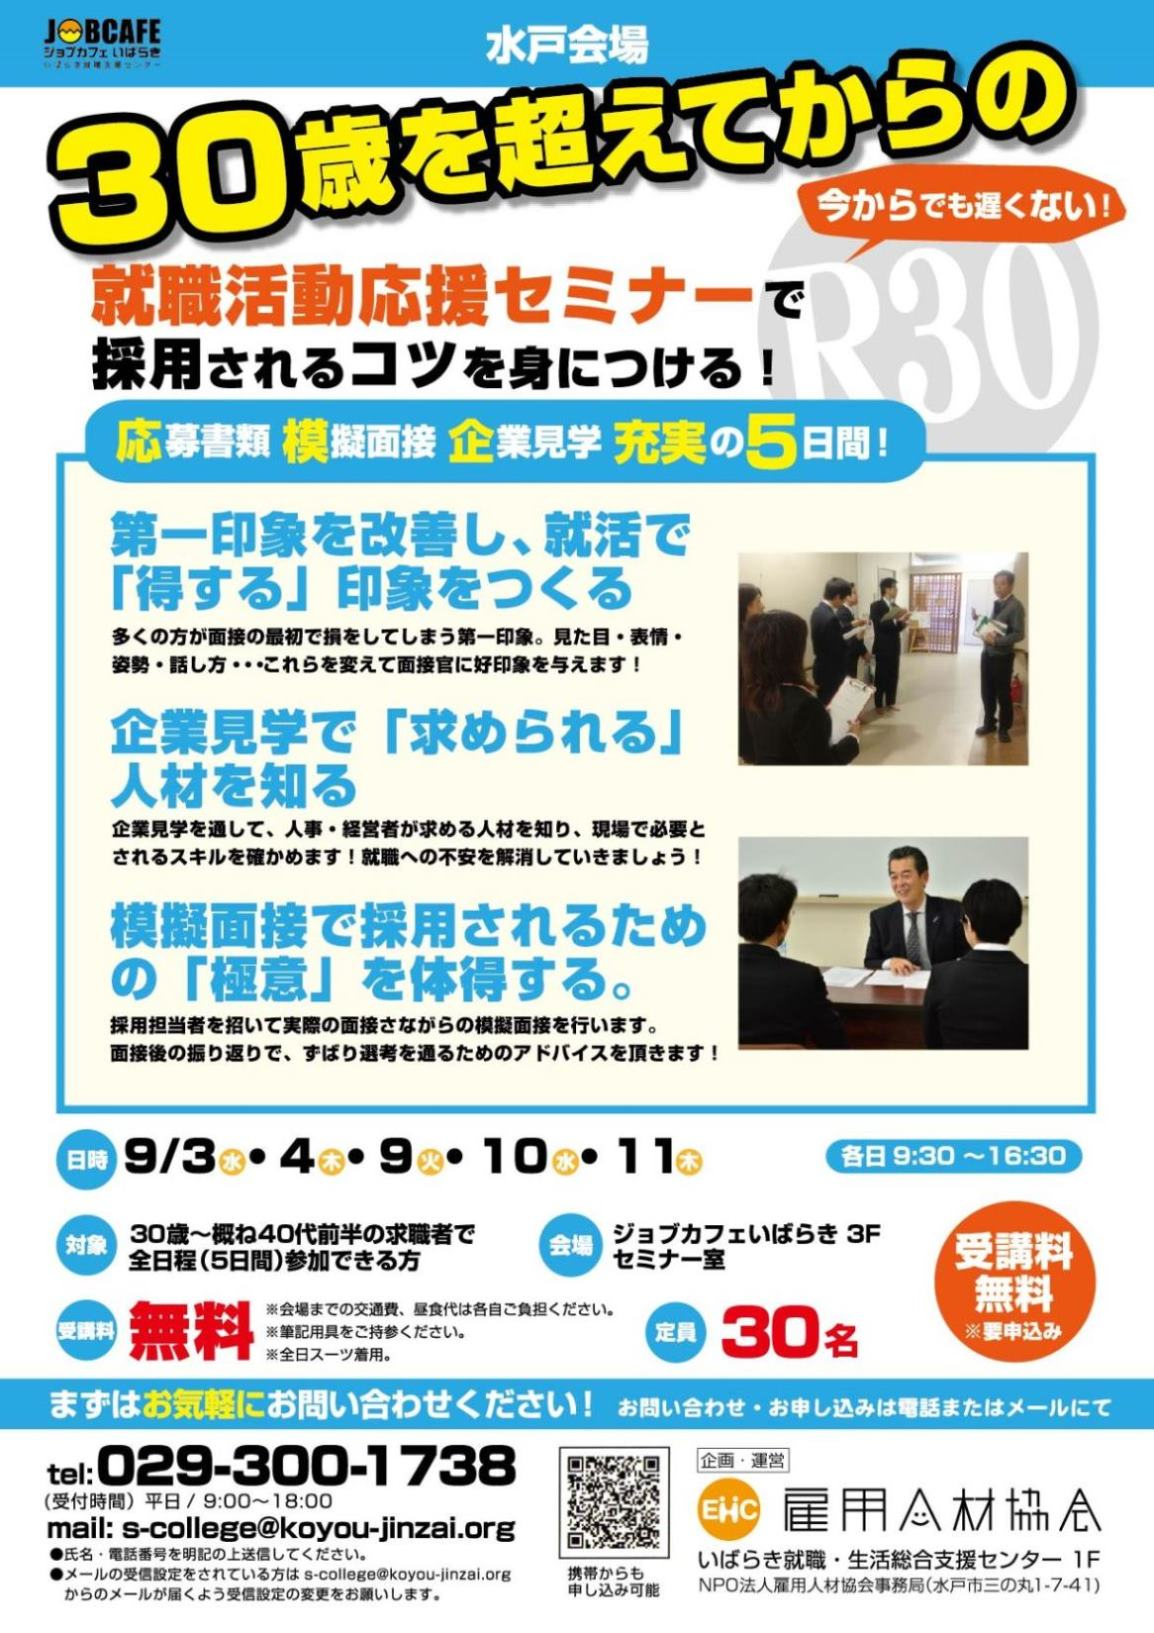 http://koyou-jinzai.org/res/images/20140903R30omote.jpg